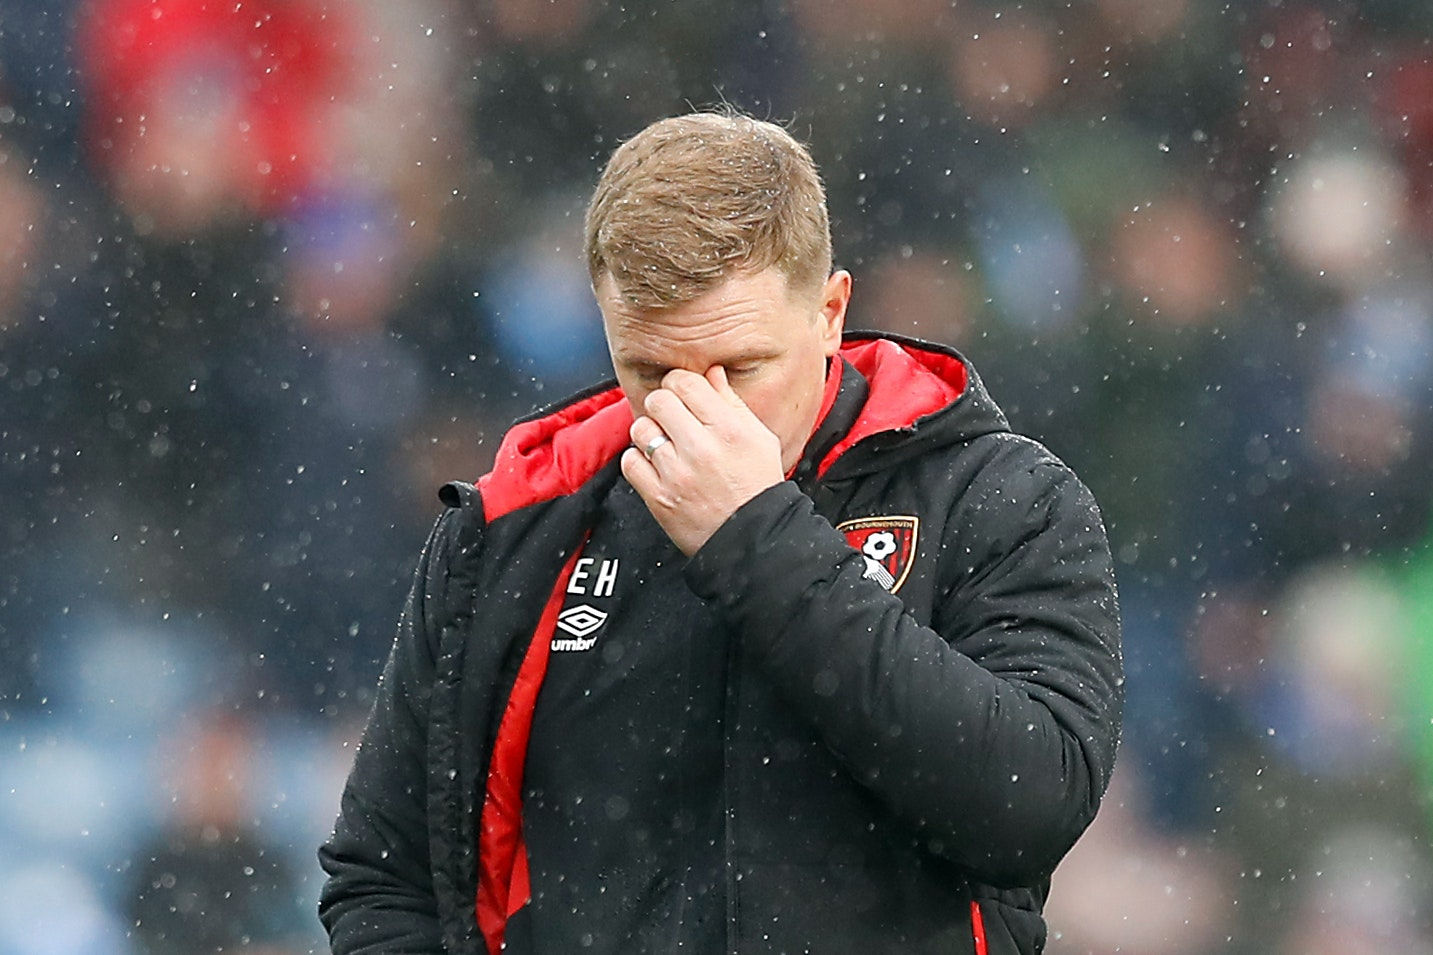 Eddie Howe's Bournemouth team are on a bad run and face Chelsea next.